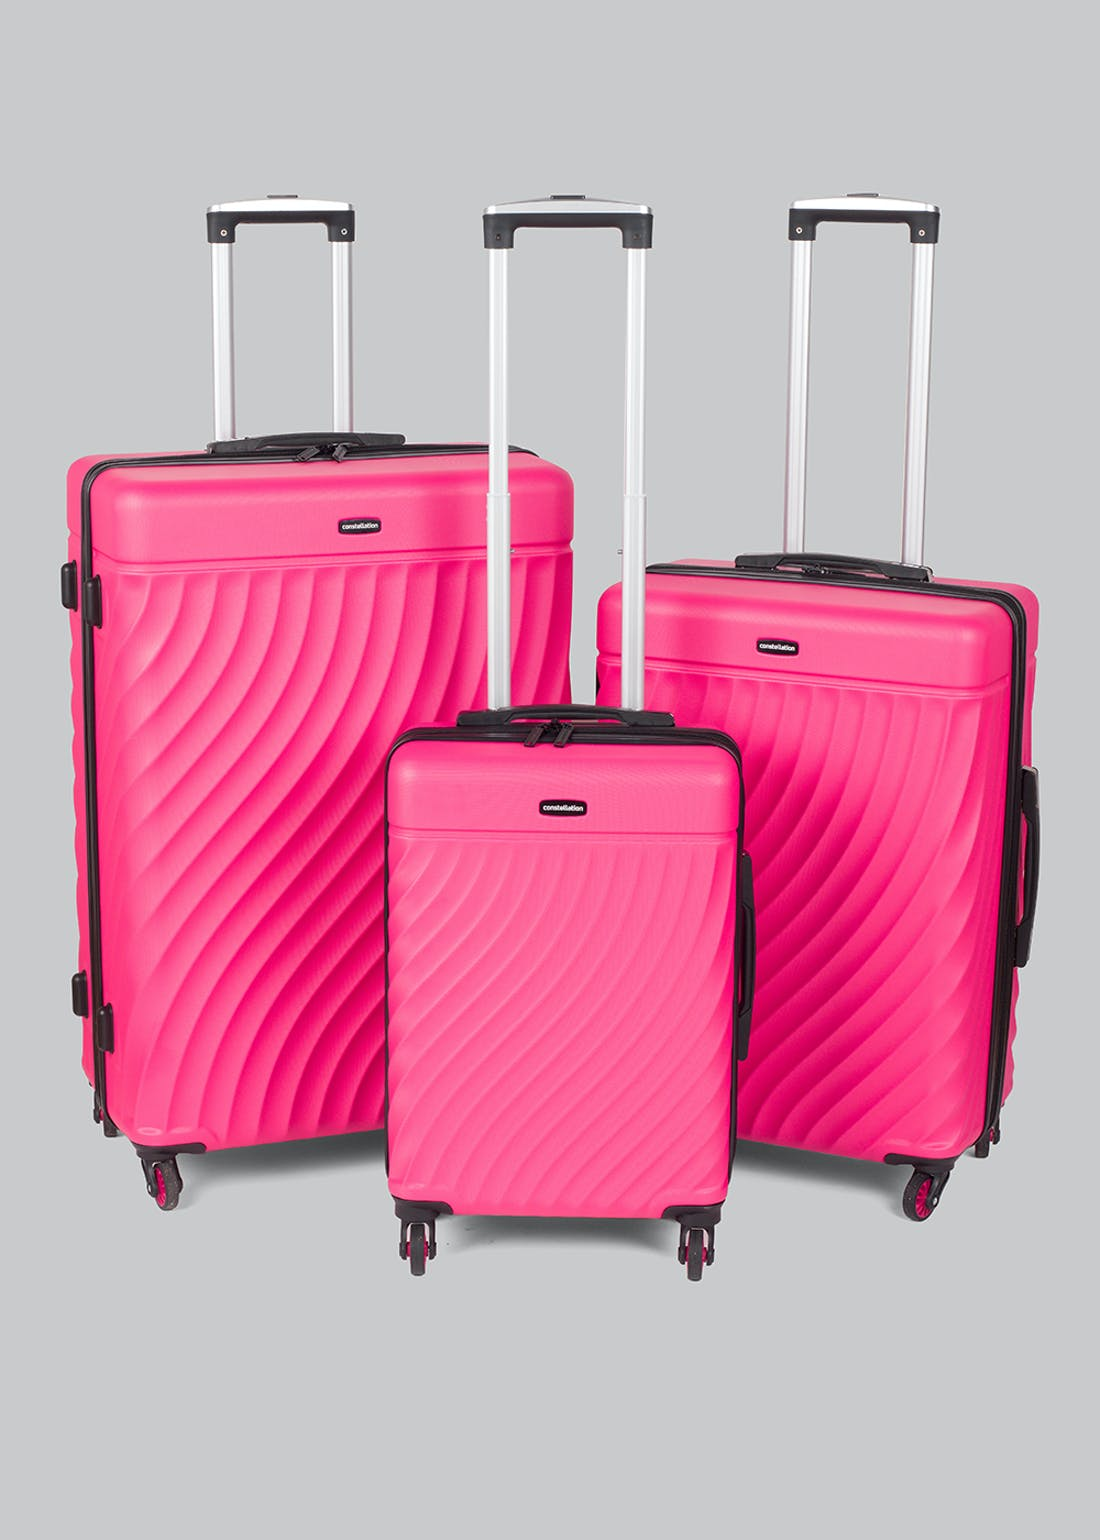 Constellation Hard Shell Suitcase